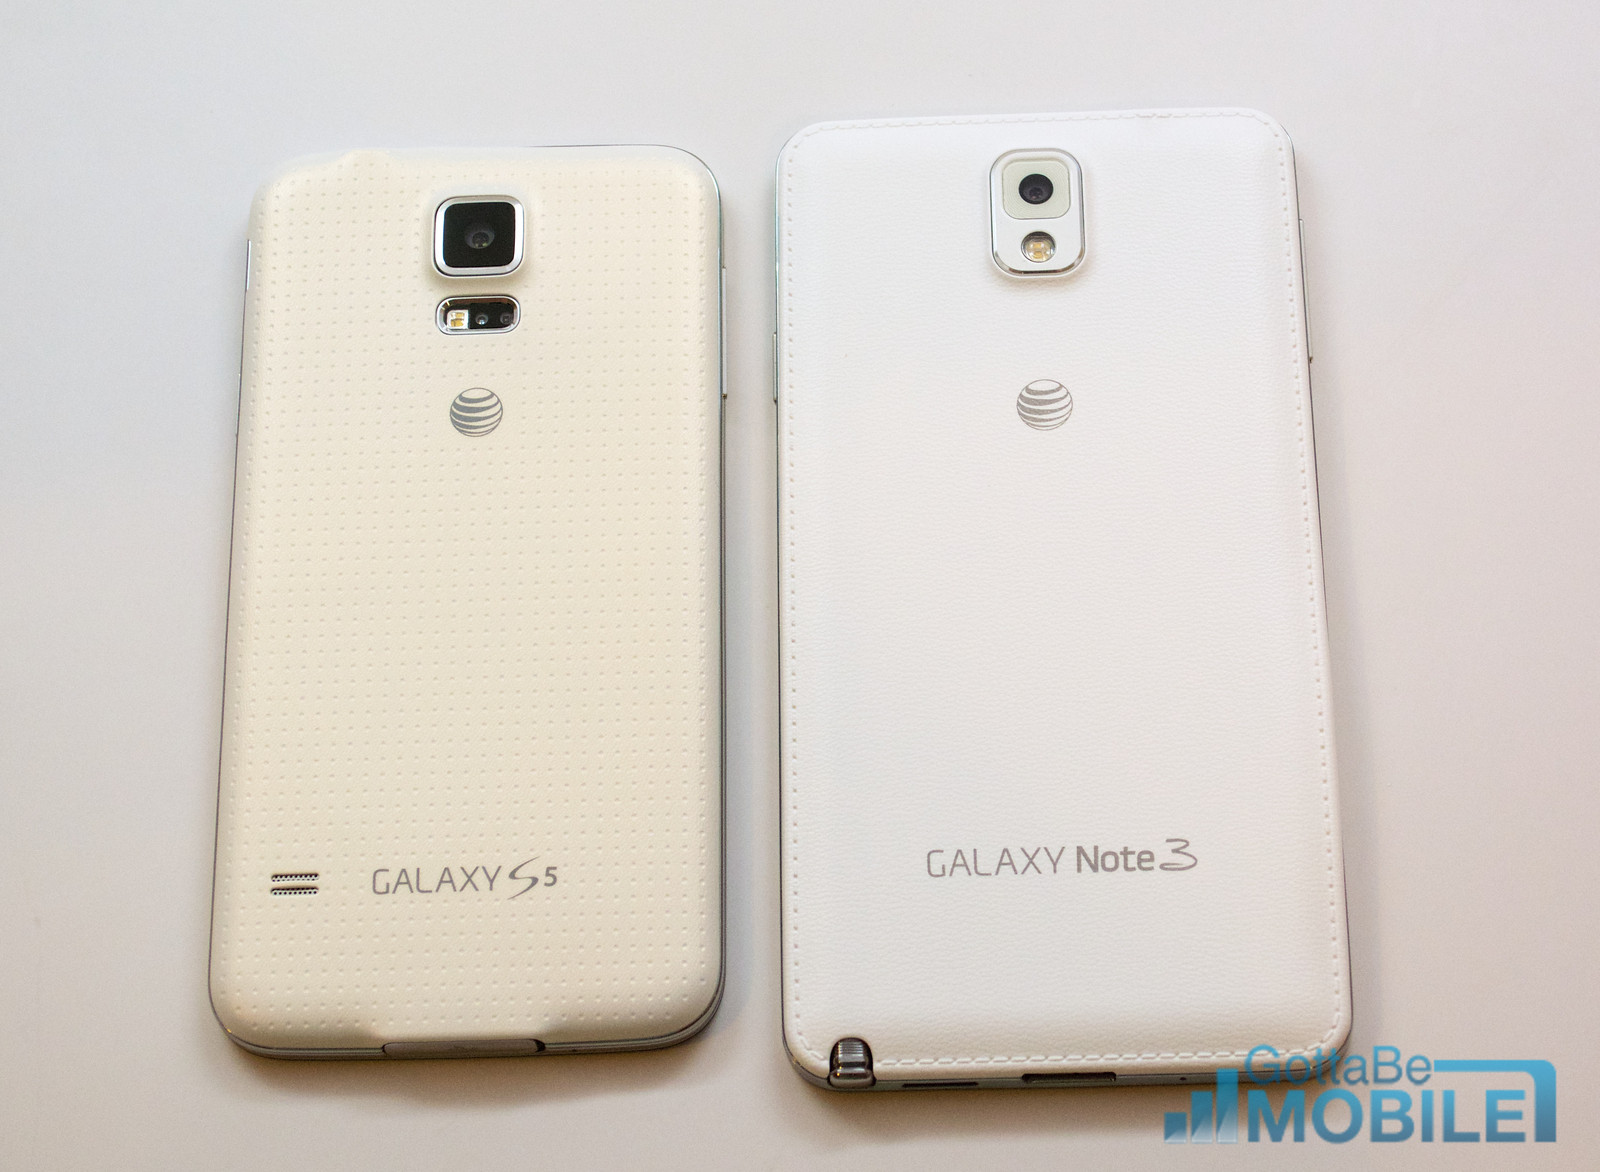 Samsung Galaxy S5 vs Galaxy Note 3 Video: Buyer's Guide